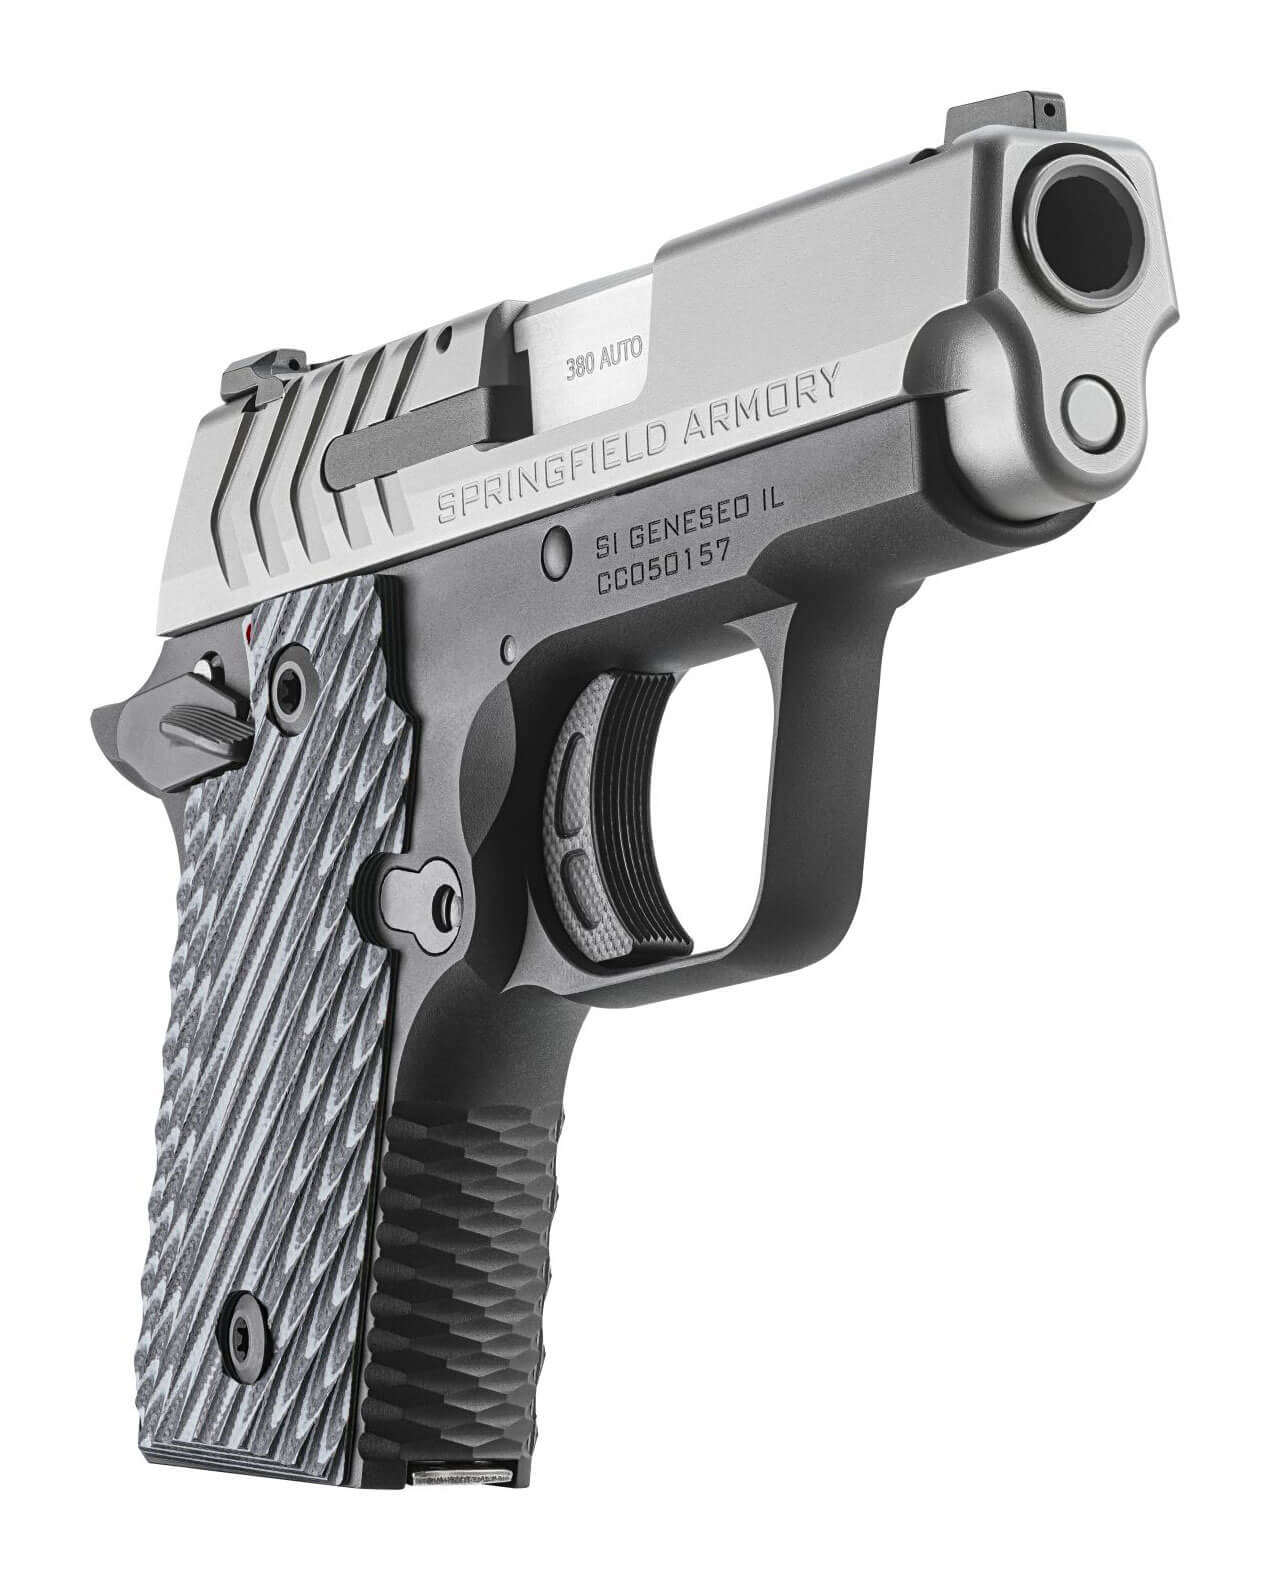 Angle view of the Springfield Armory 911 in .380 ACP